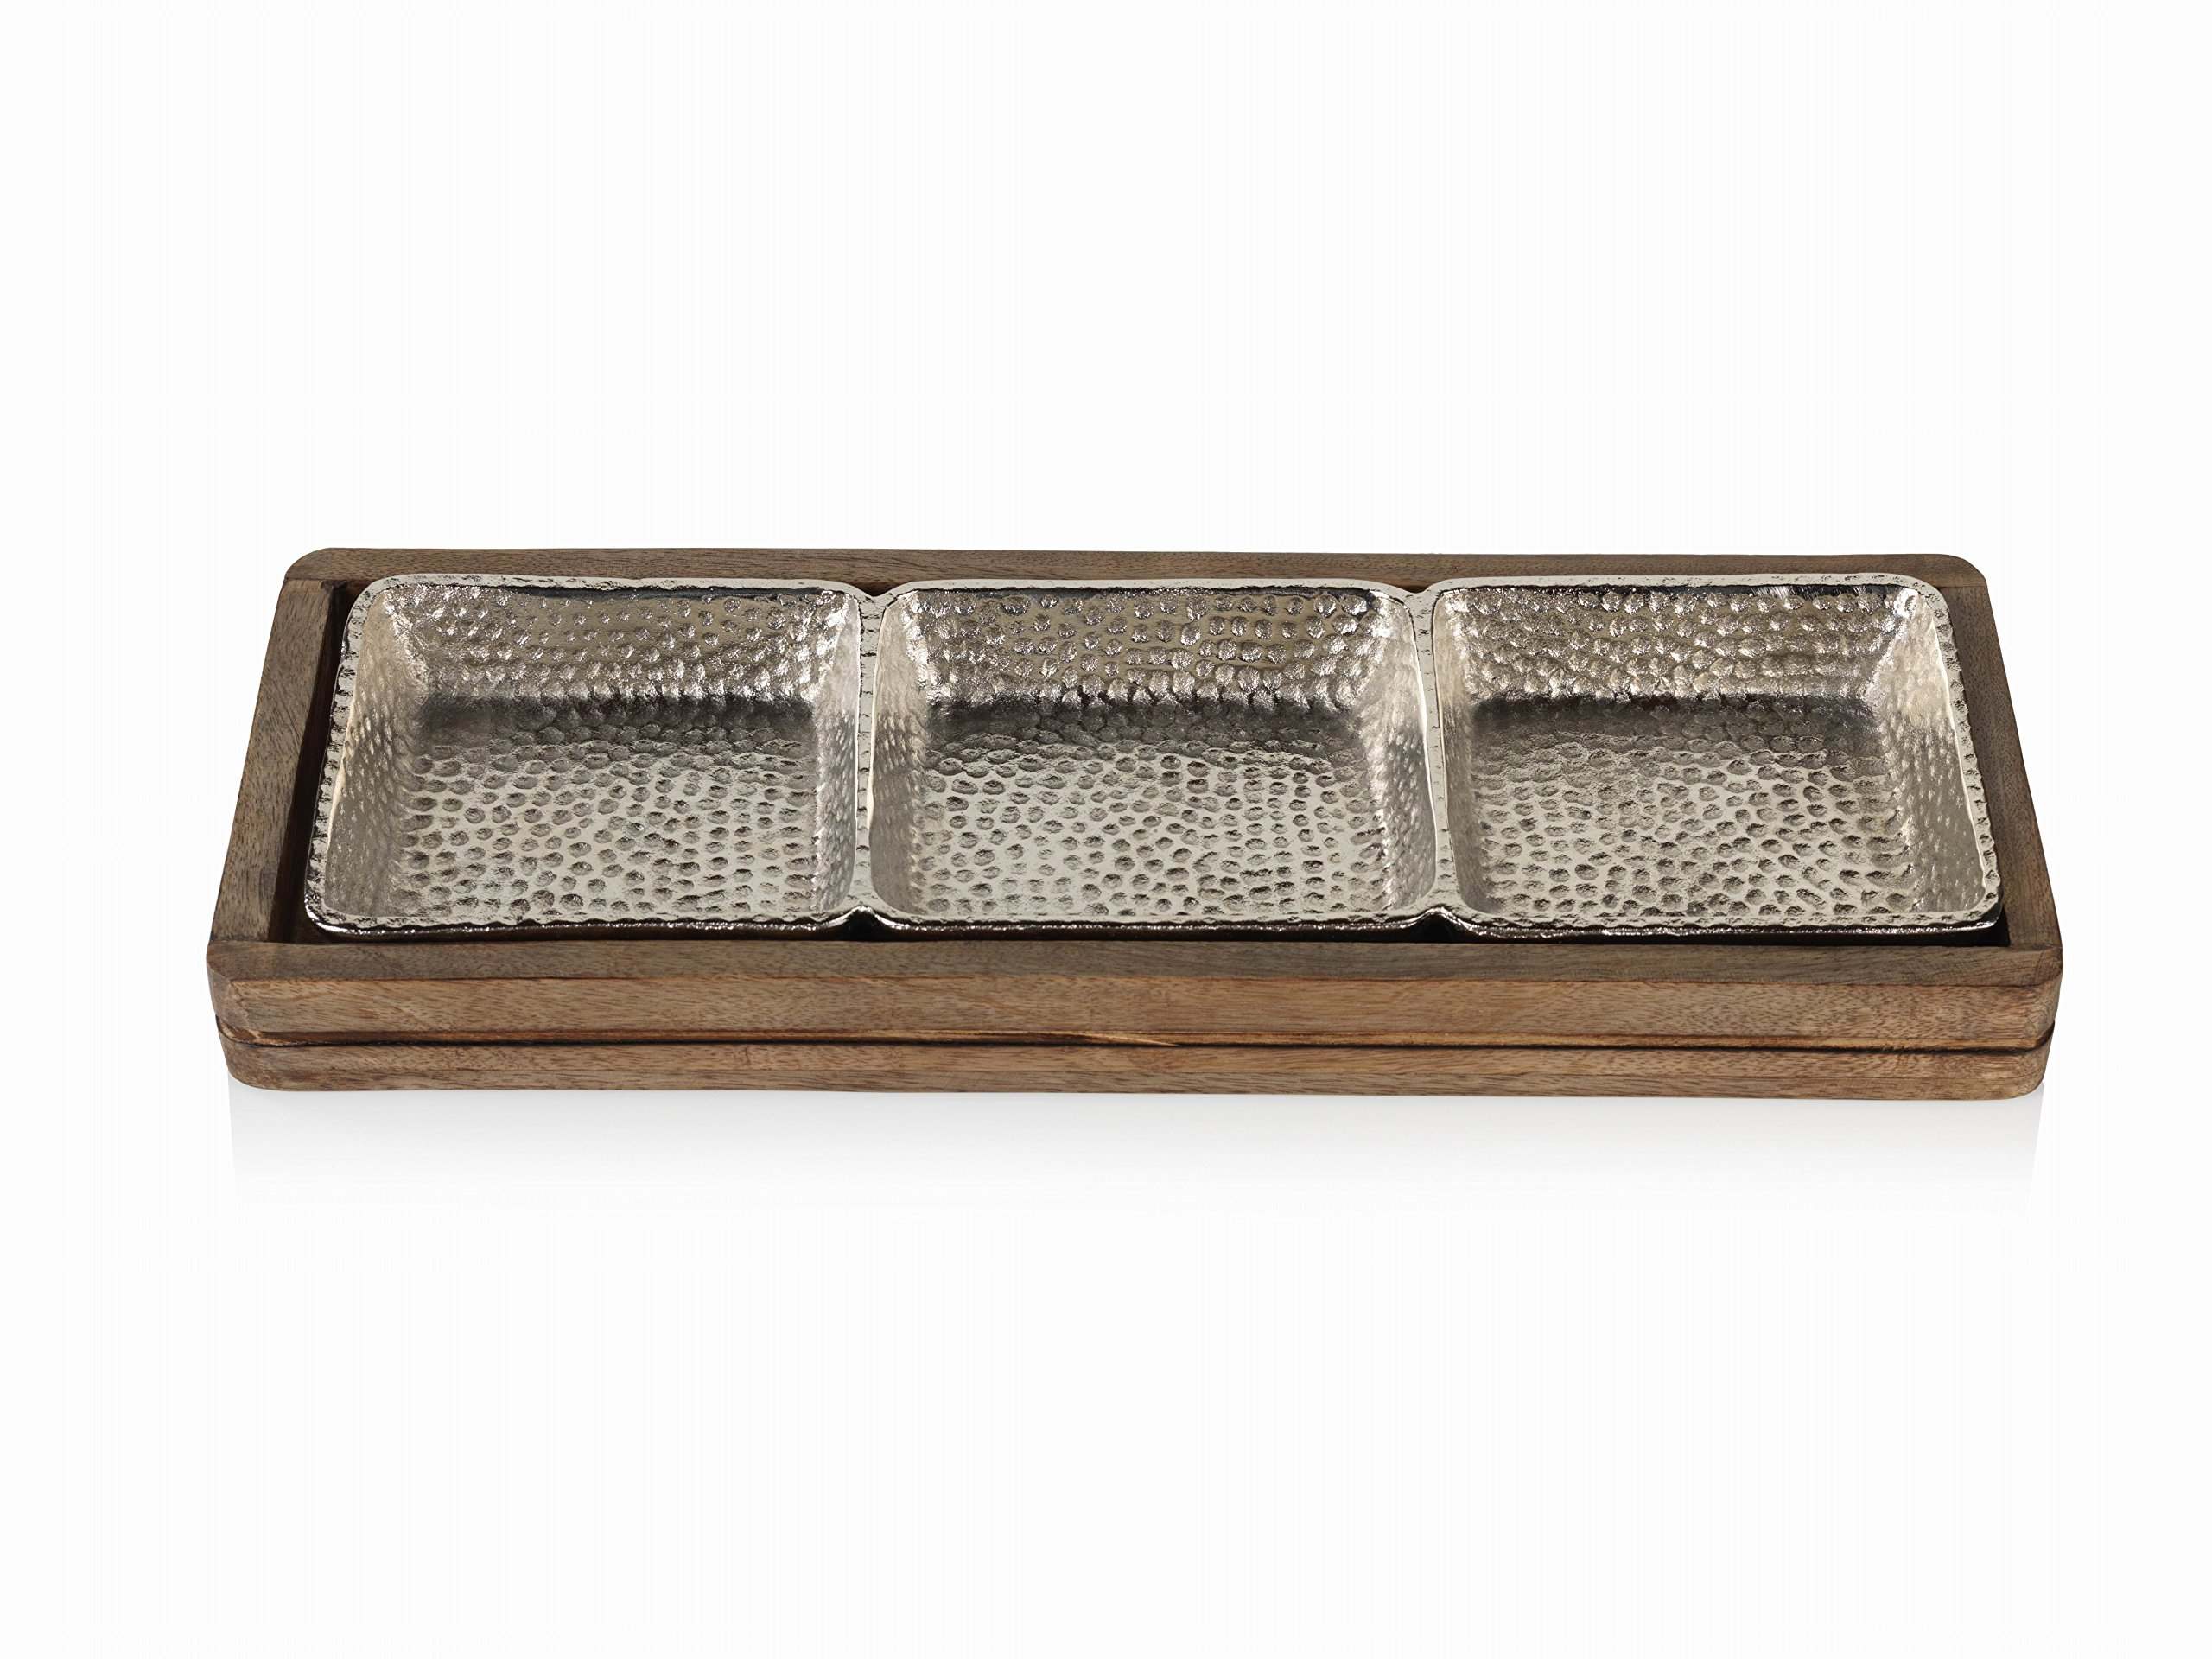 Zodax Mango Wood Hammered Aluminum Sectional Snack Serving Tray